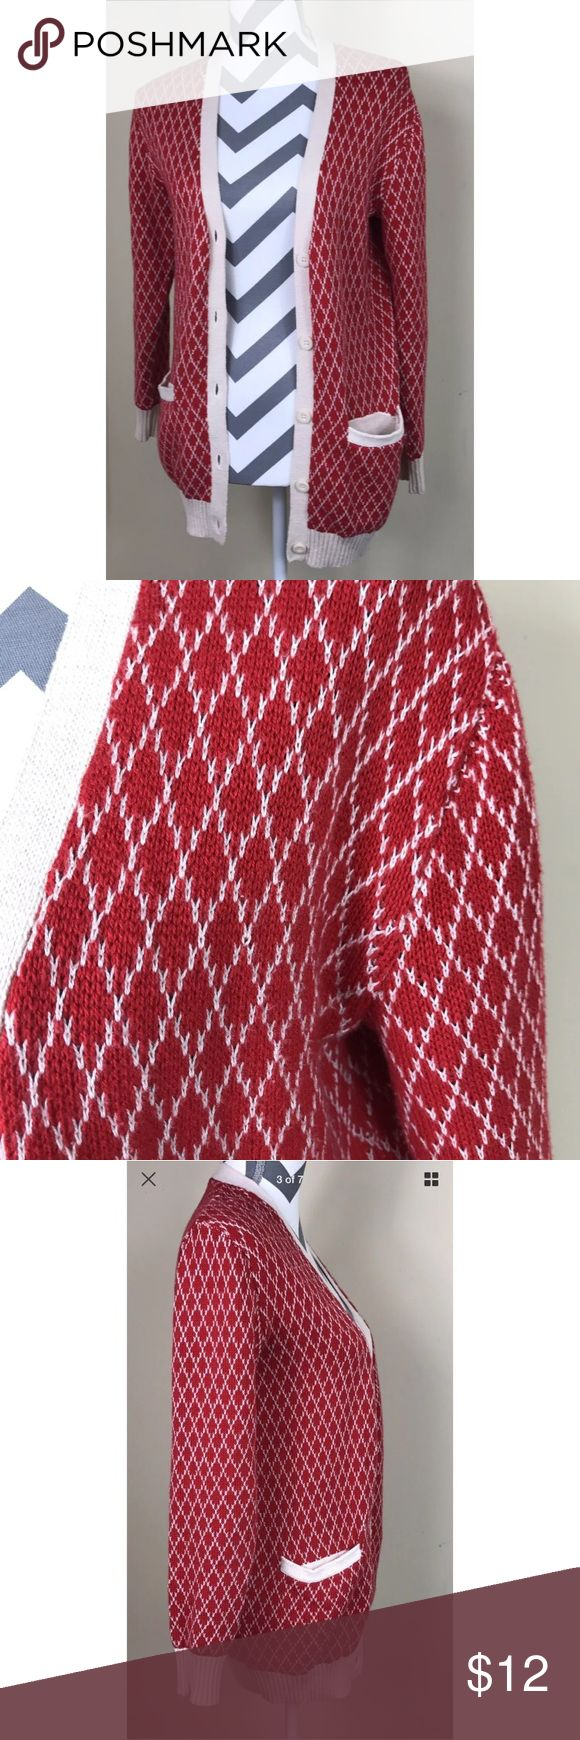 """🌷BDG UO Red White Diamond Pattern L/S Cardigan Good Pre-loved Condition -- there is a pull on the right shoulder as noted in the last picture but when on the mannequin, not noticeable BDG Urban Outfitters Women's Red White Diamond Pattern L/S Cardigan   Size: Women's XS Measured laying down flat: 29"""" long, 18"""" across bust, 23"""" long sleeves Material: 60% Cotton + 40% Acrylic Description: Button Down front, V-neckline, 2 front pockets, long sleeve, stretchy, argyle print Urban Outfitters…"""